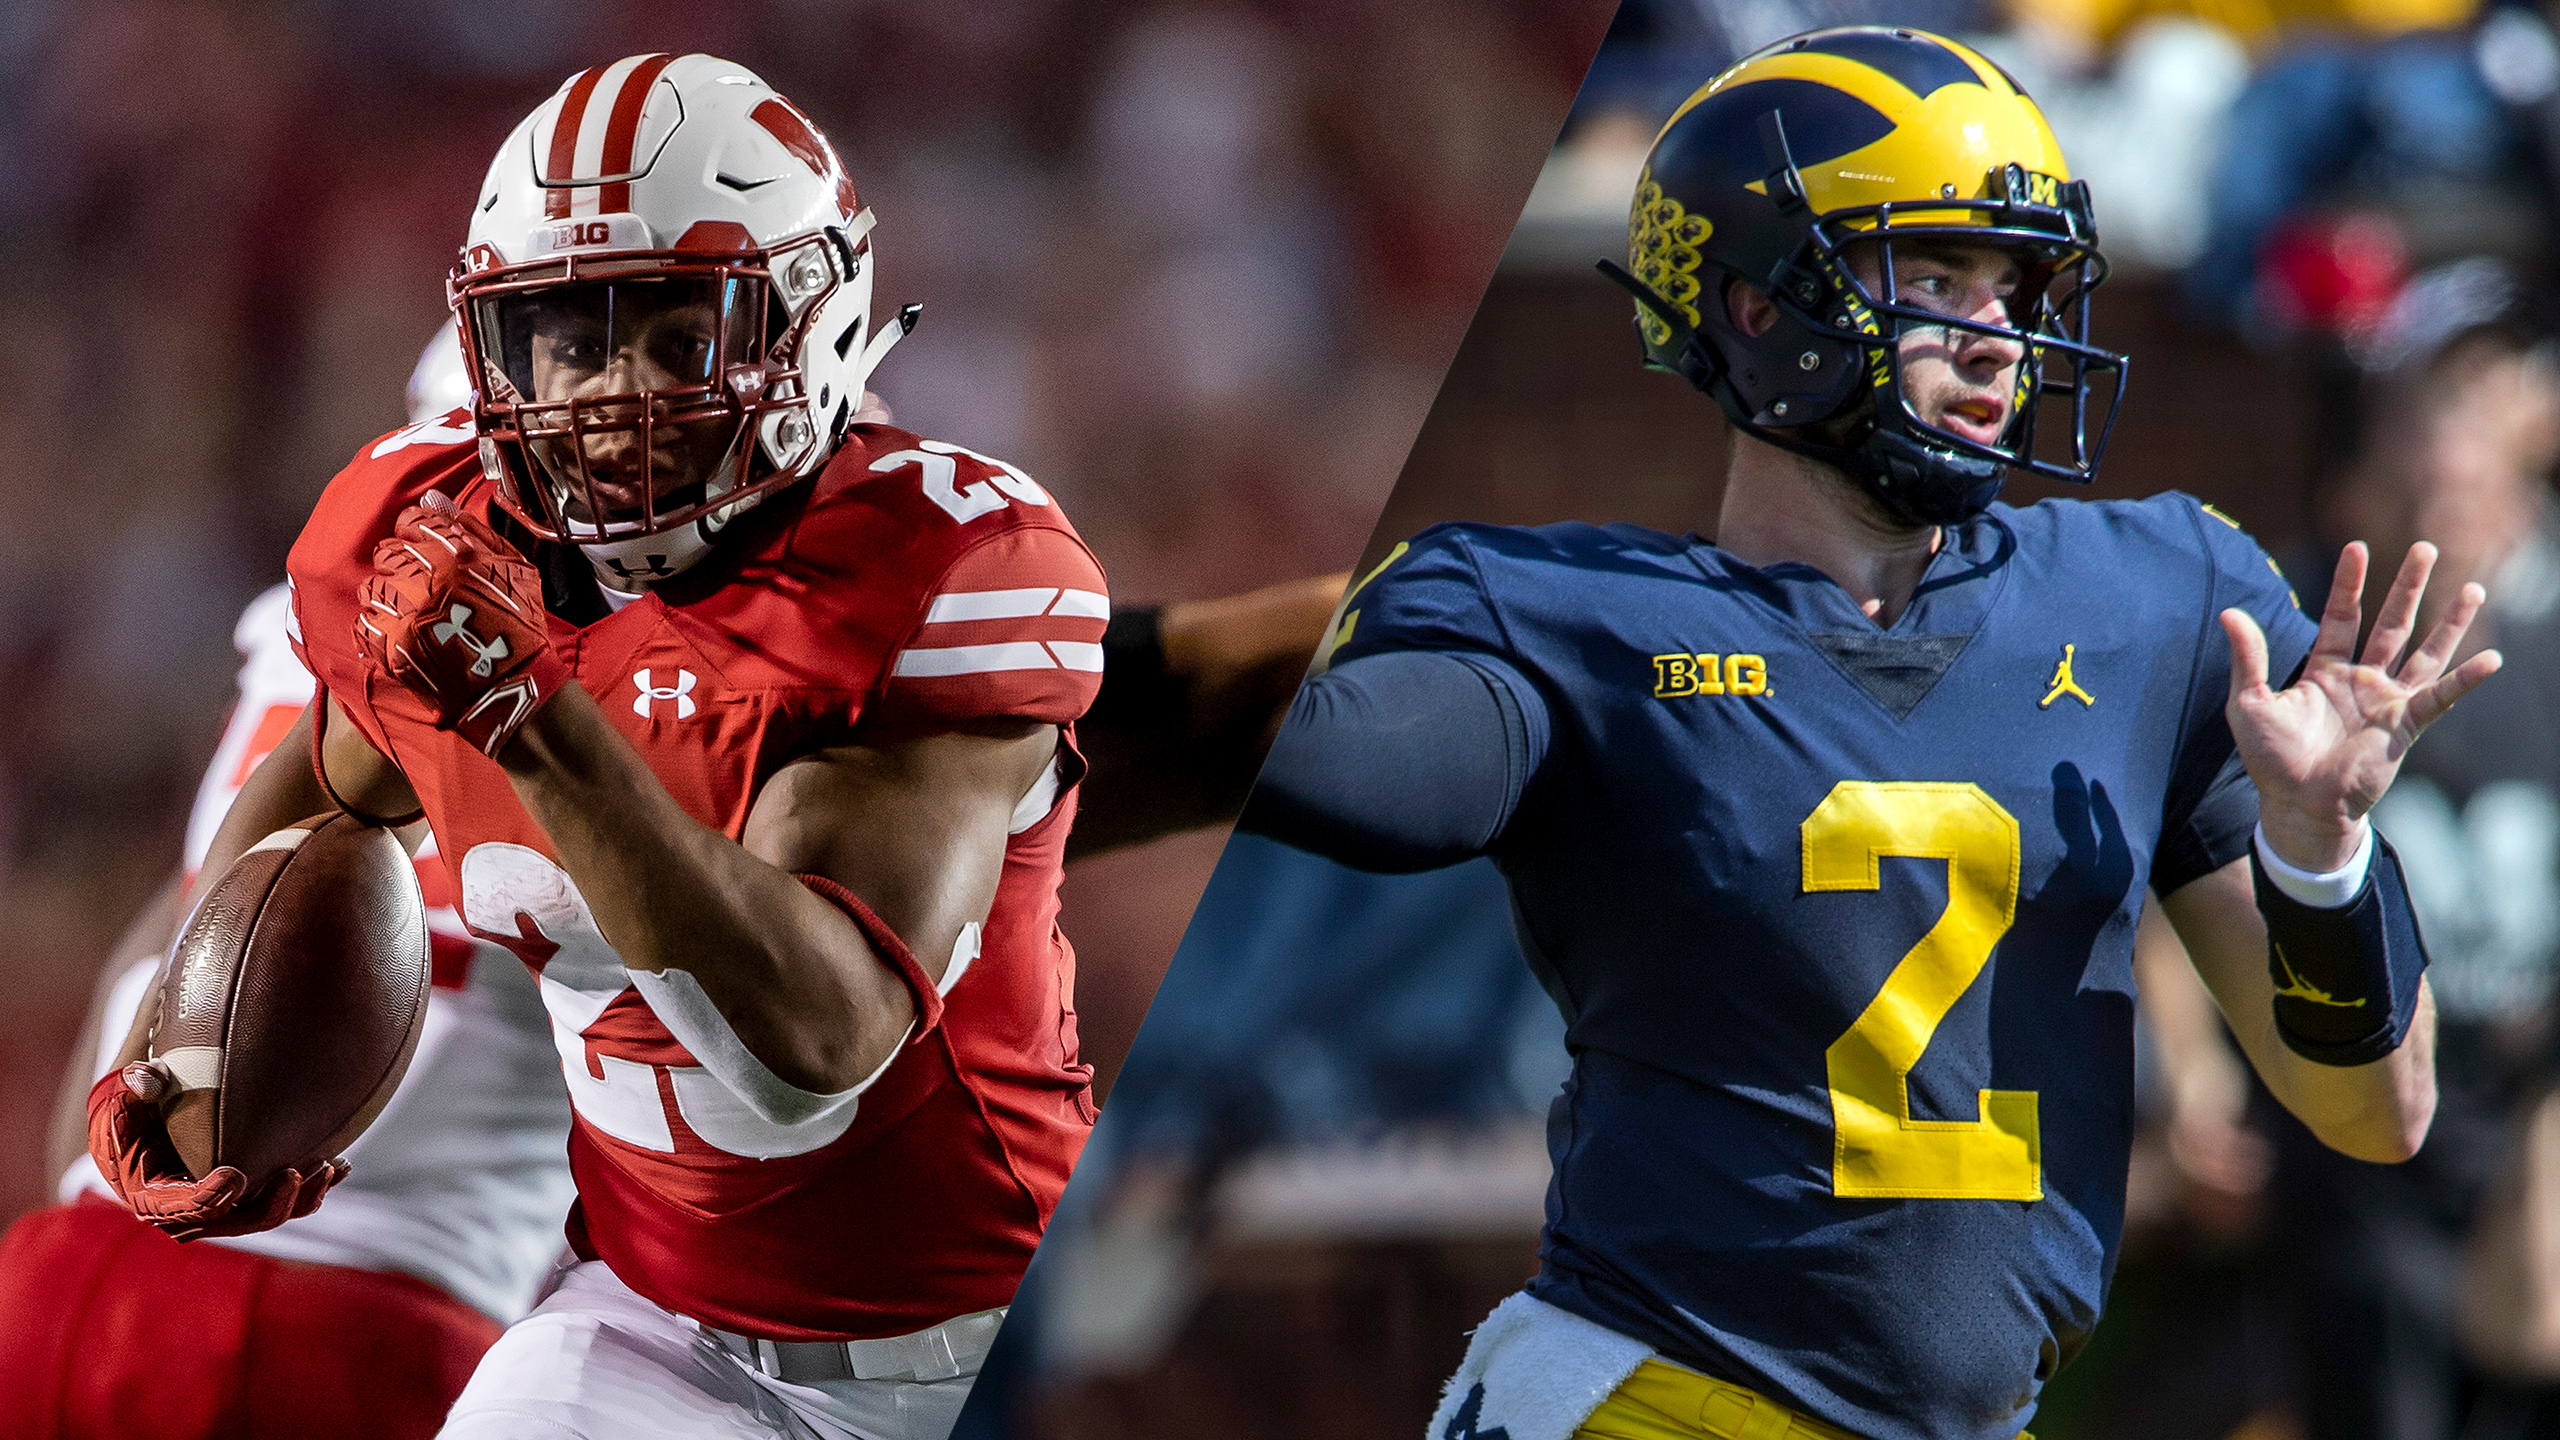 #15 Wisconsin vs. #12 Michigan (Football)